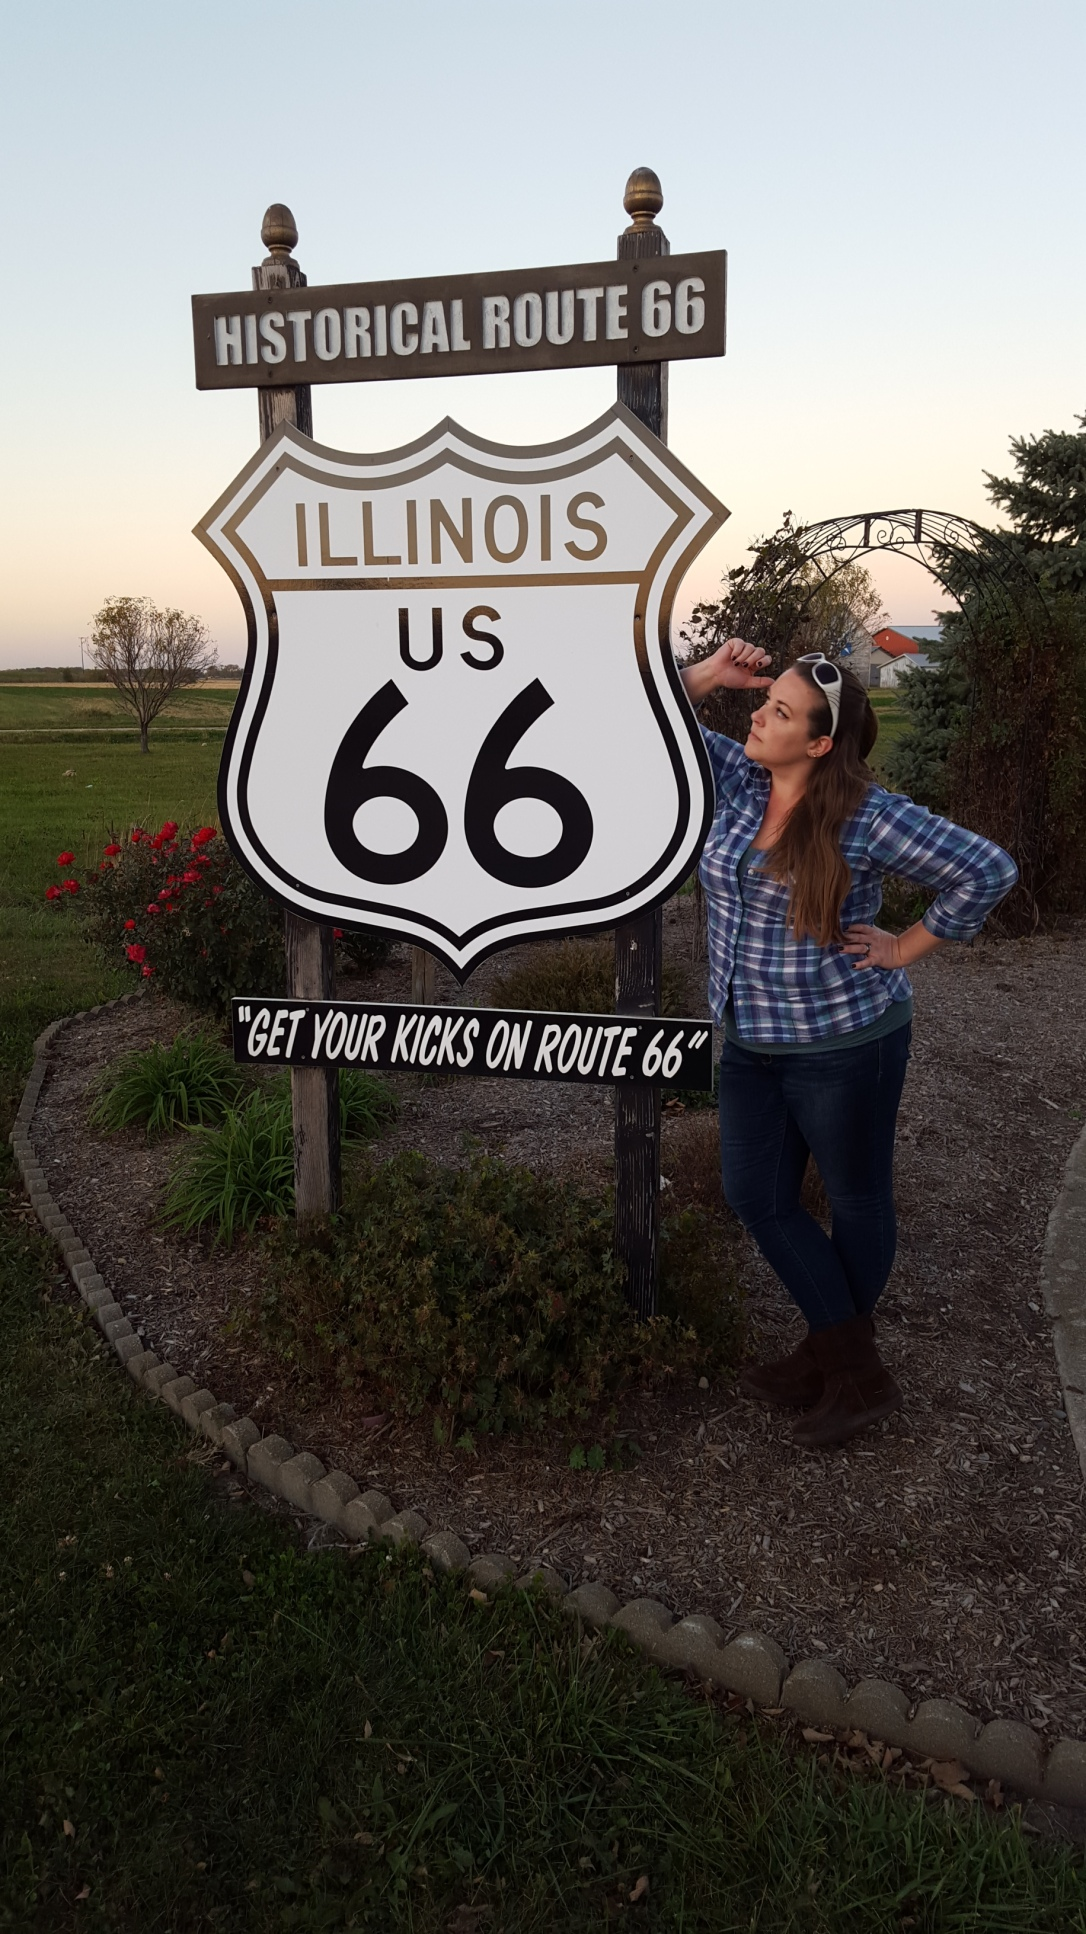 Route 66, Springfield, Illinois